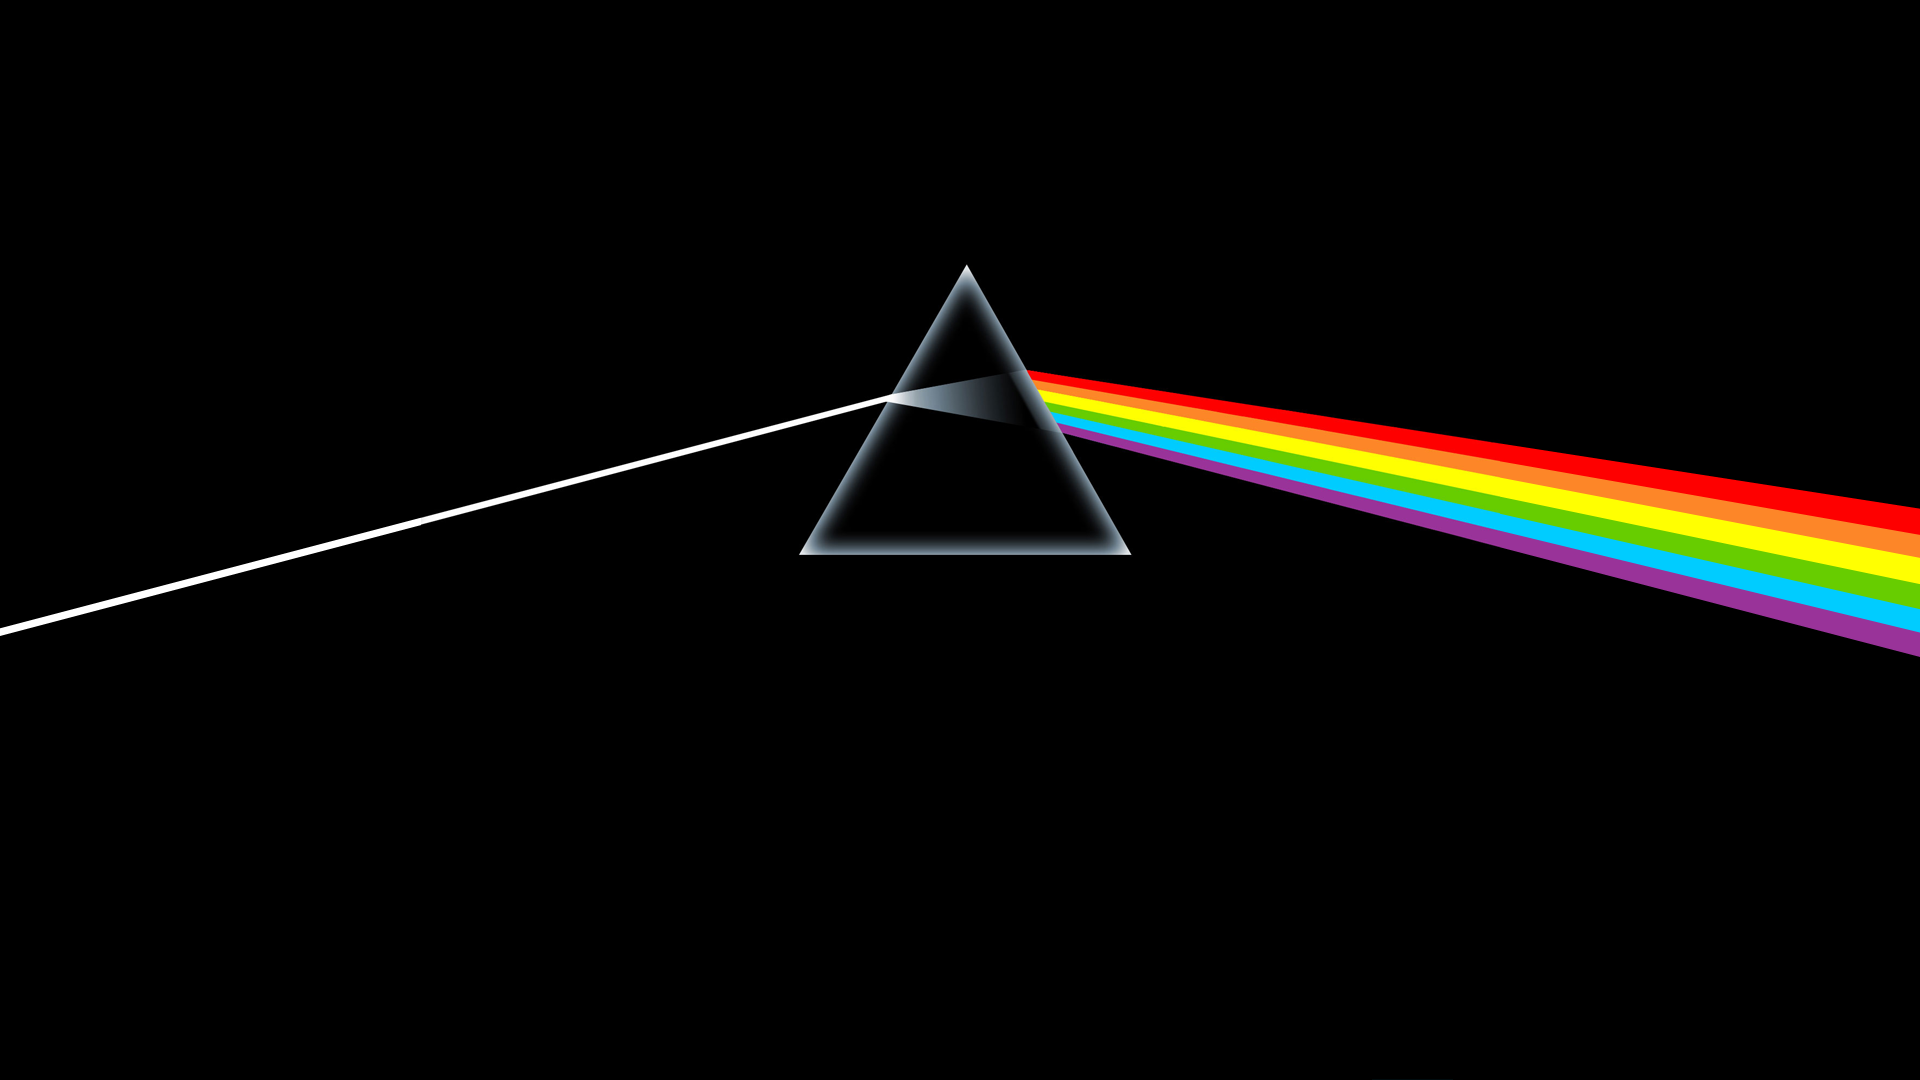 Pink Floyd The Dark Side Of The Moon wallpaper 247914 1920x1080